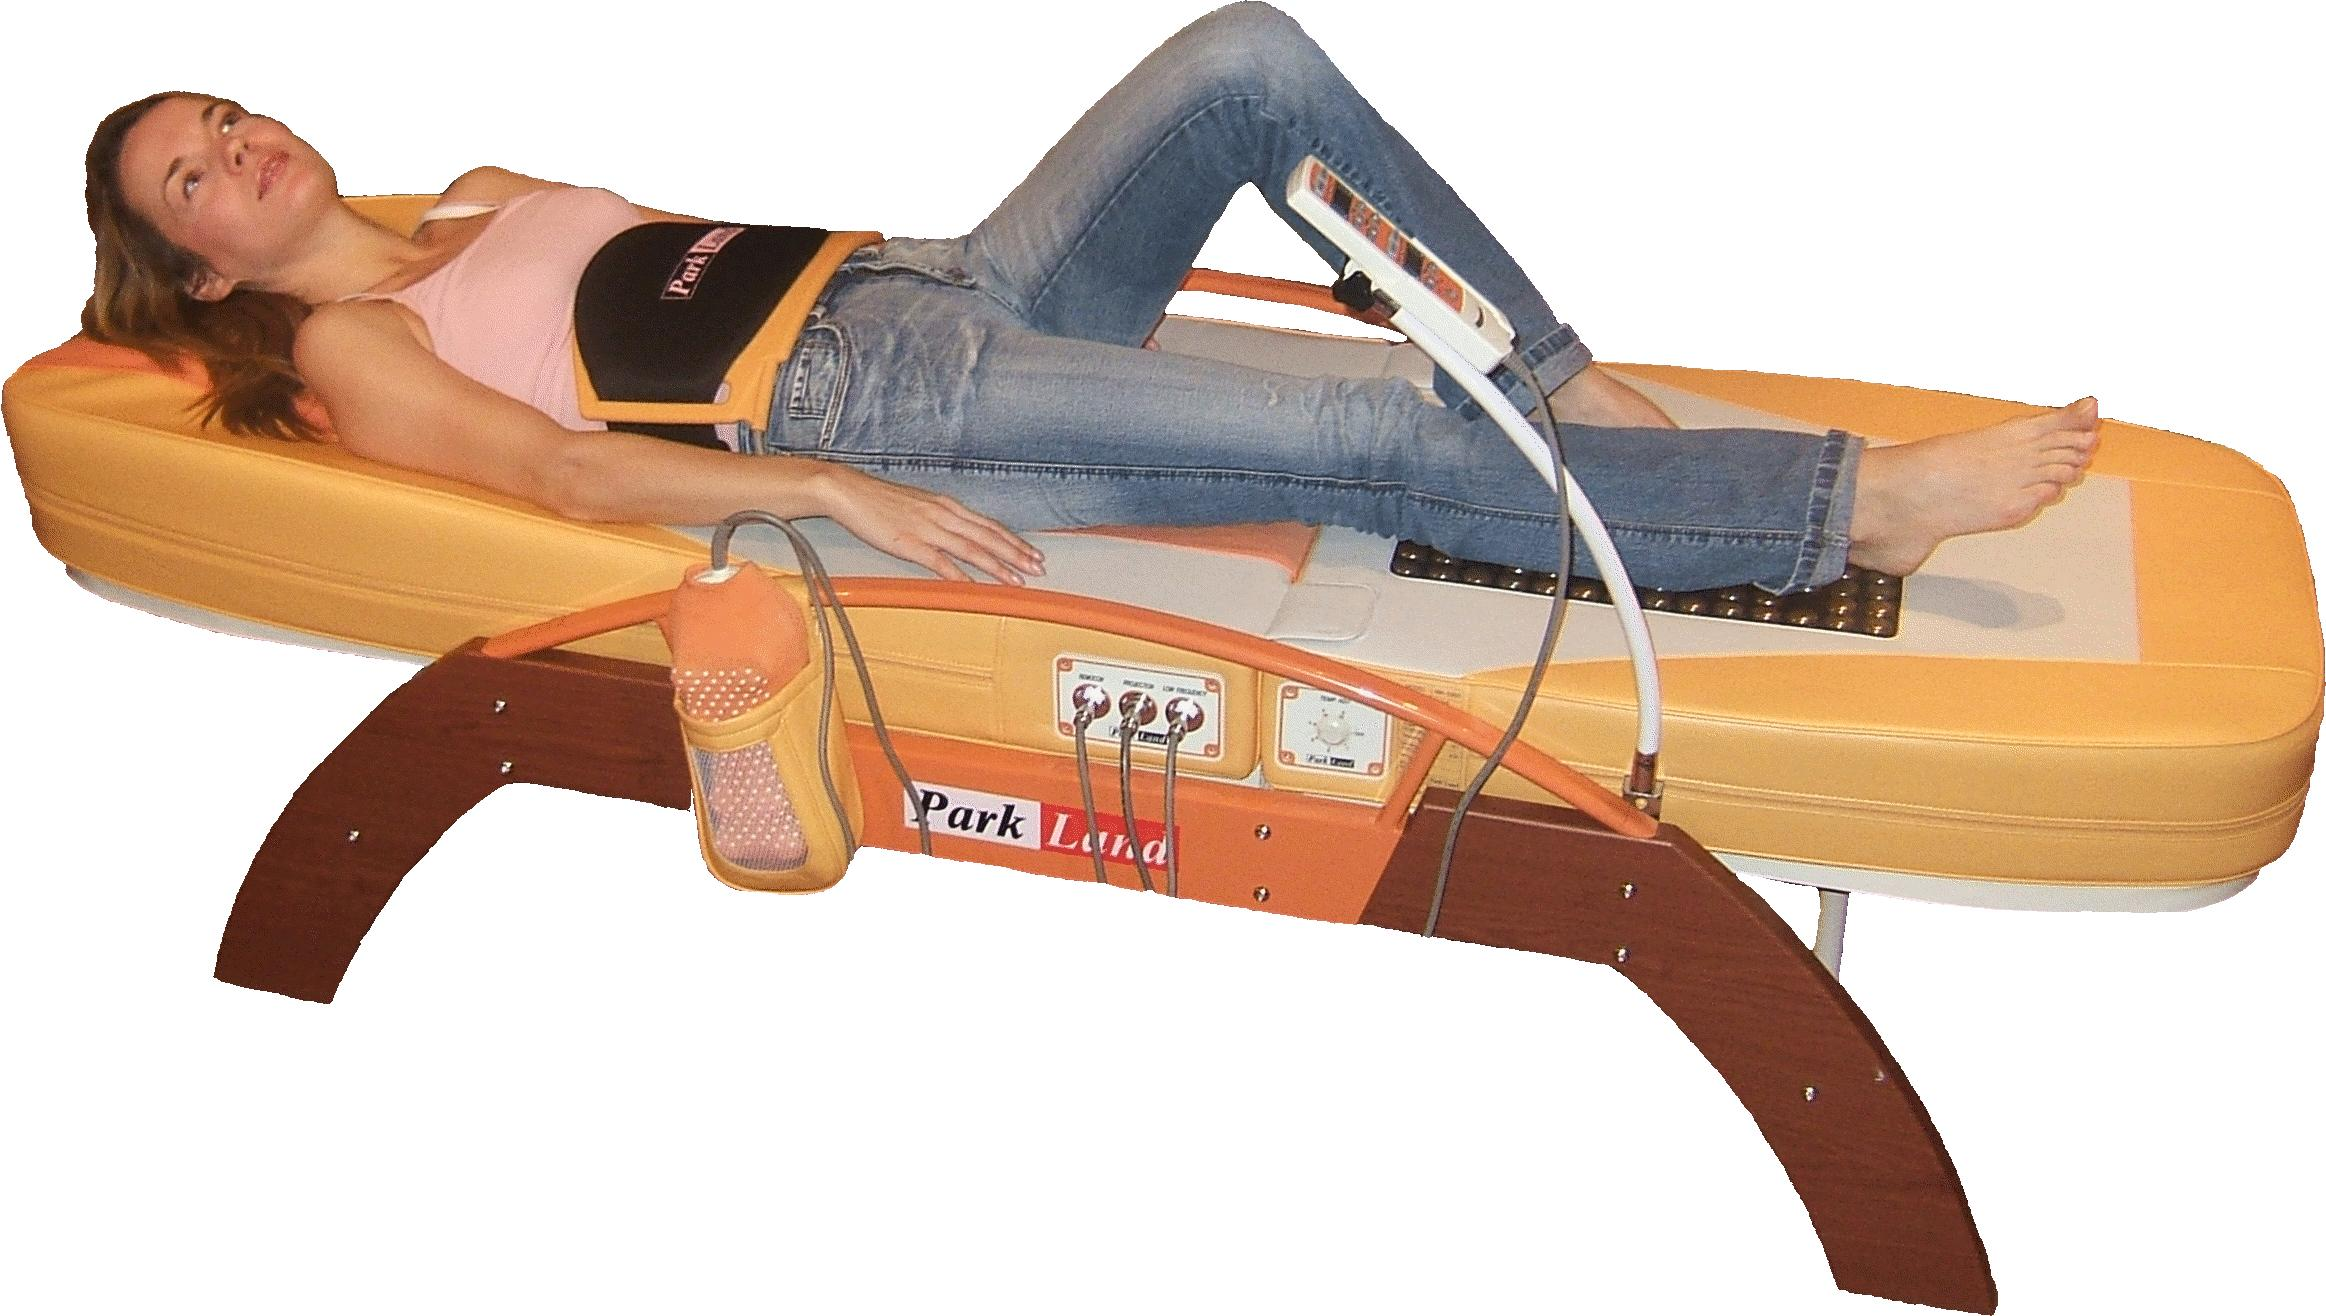 Benefits of the infra-red spine stretching bed